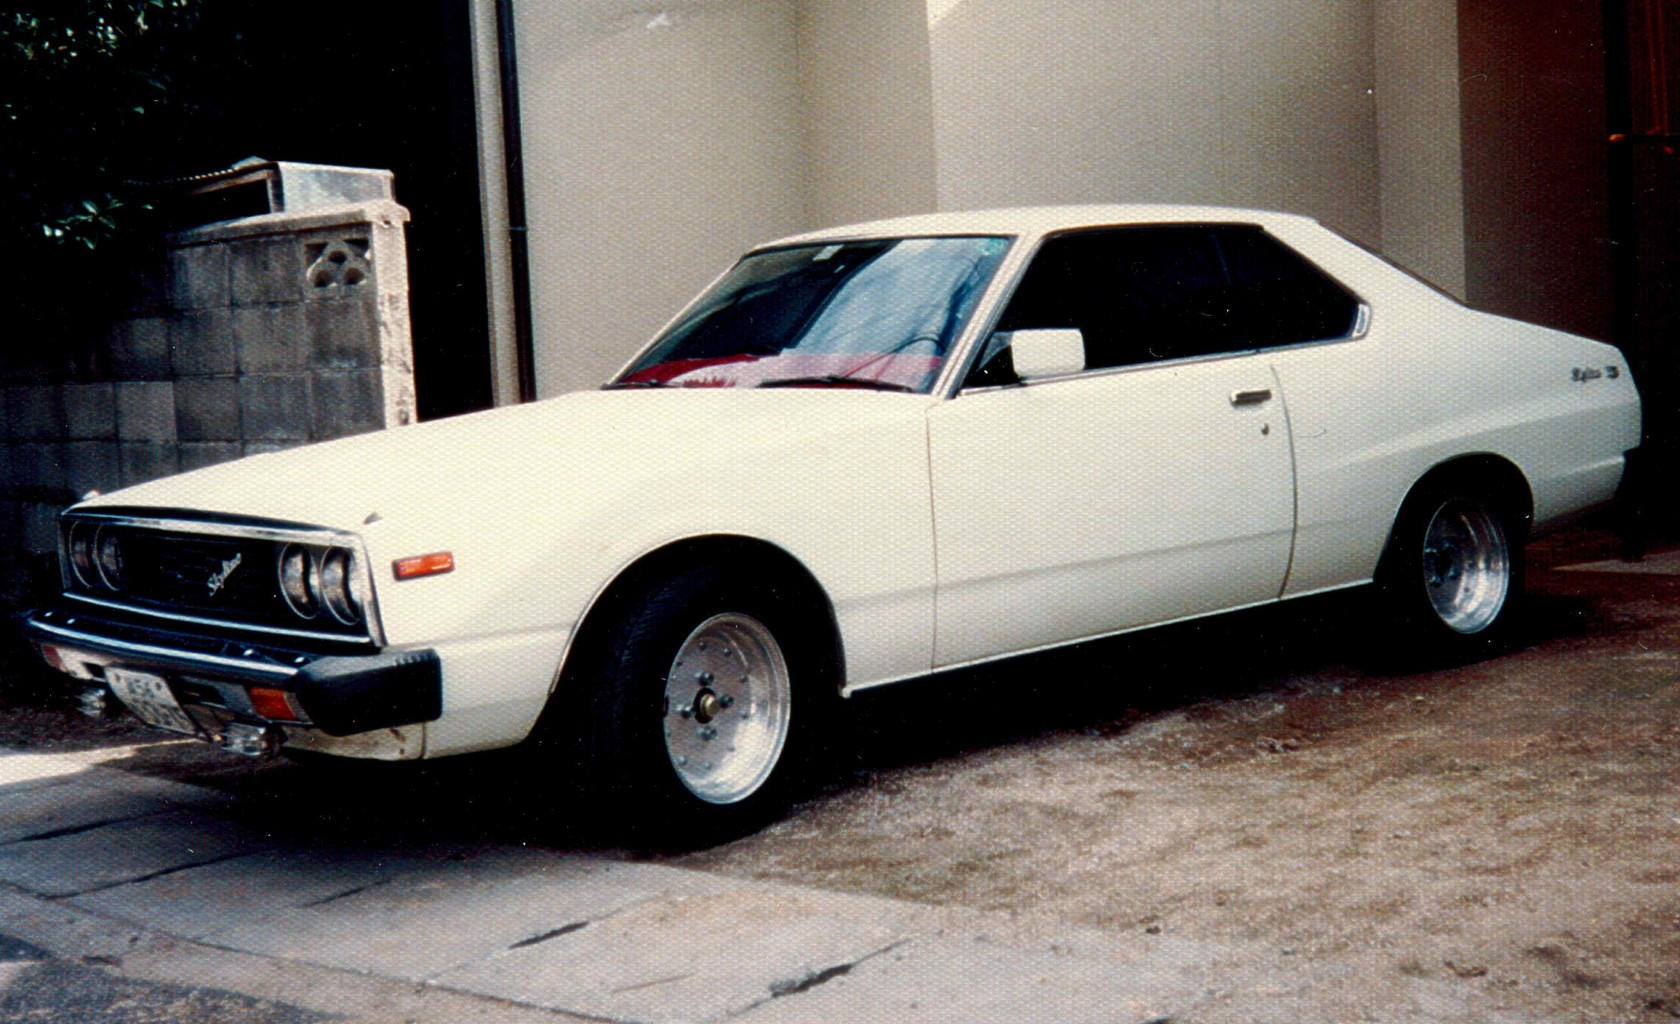 Nissan Skyline C210 vintage photo